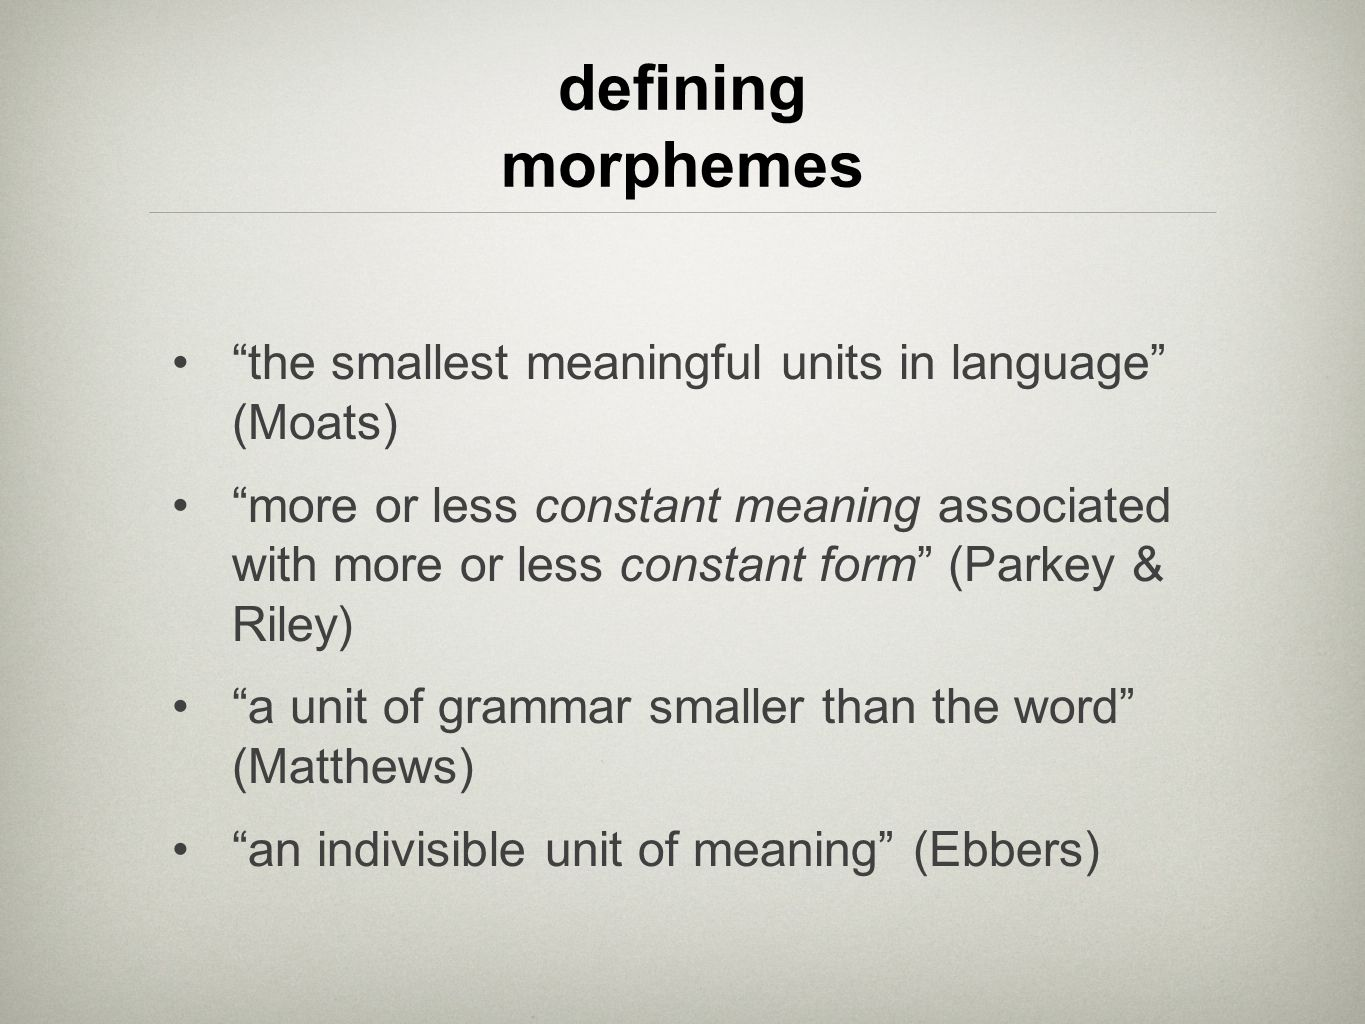 the smallest meaningful units in language (Moats) more or less constant meaning associated with more or less constant form (Parkey & Riley) a unit of